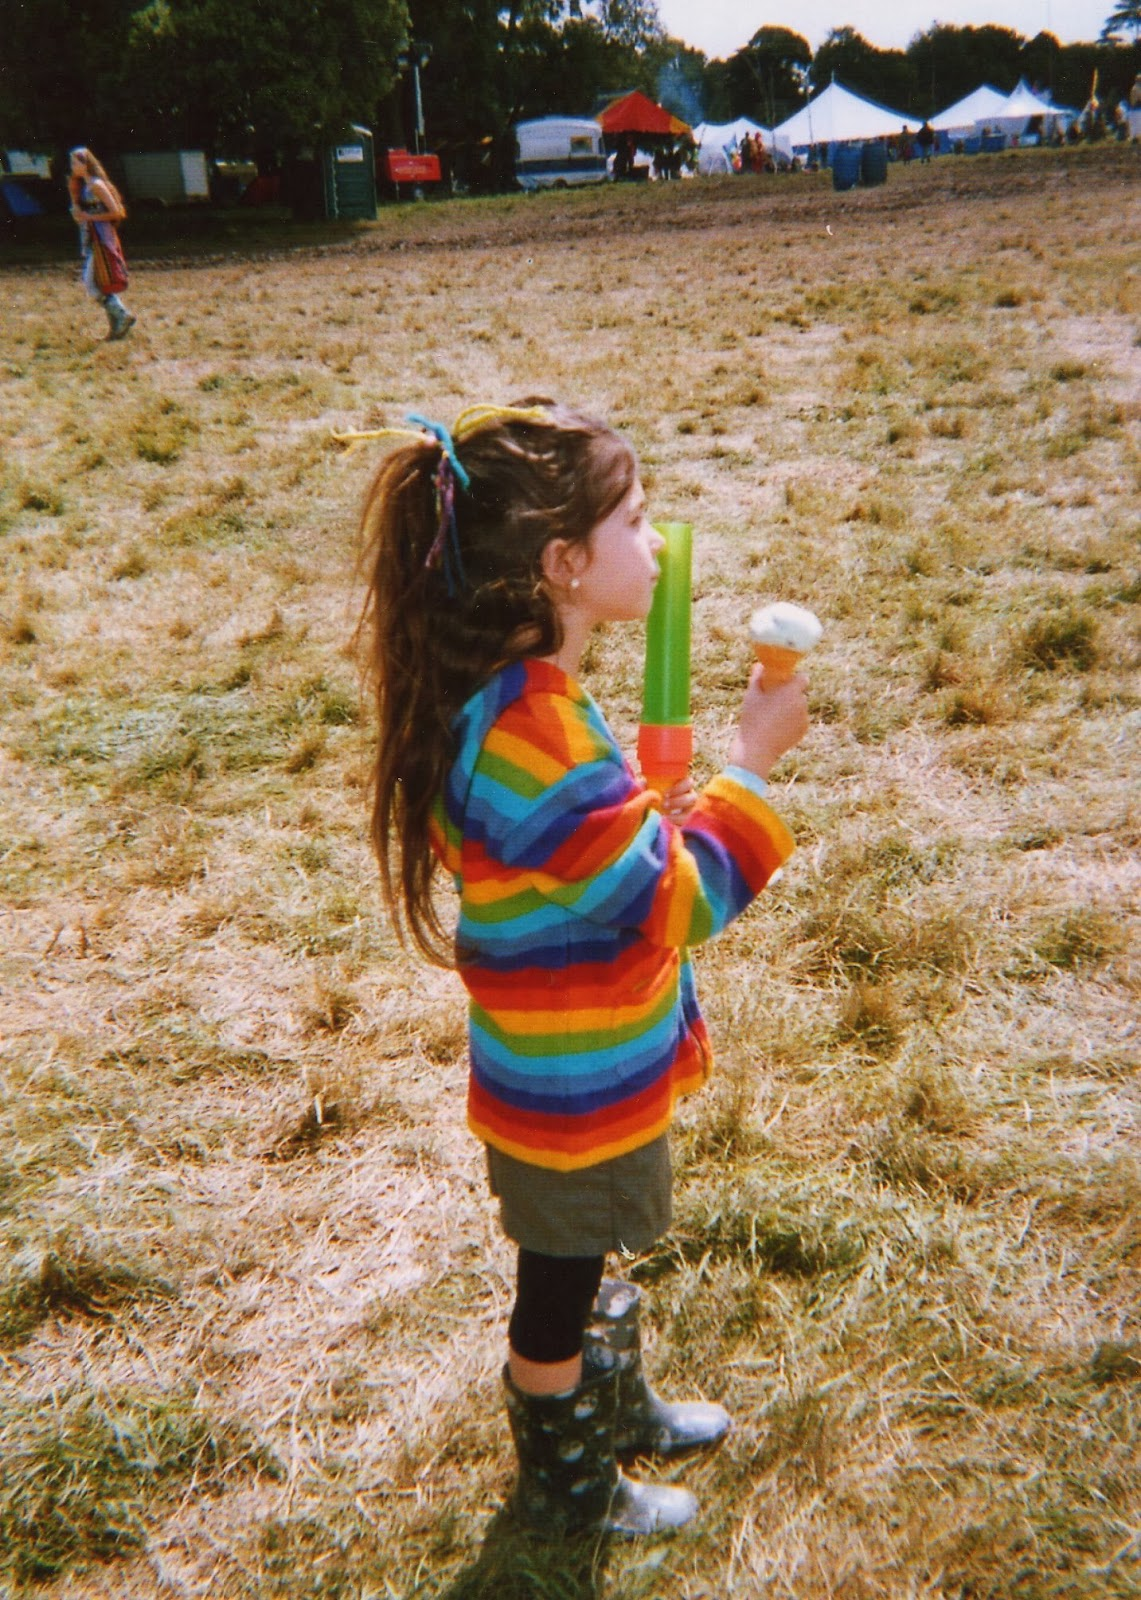 hippy child in wellies at a festival eating icecream